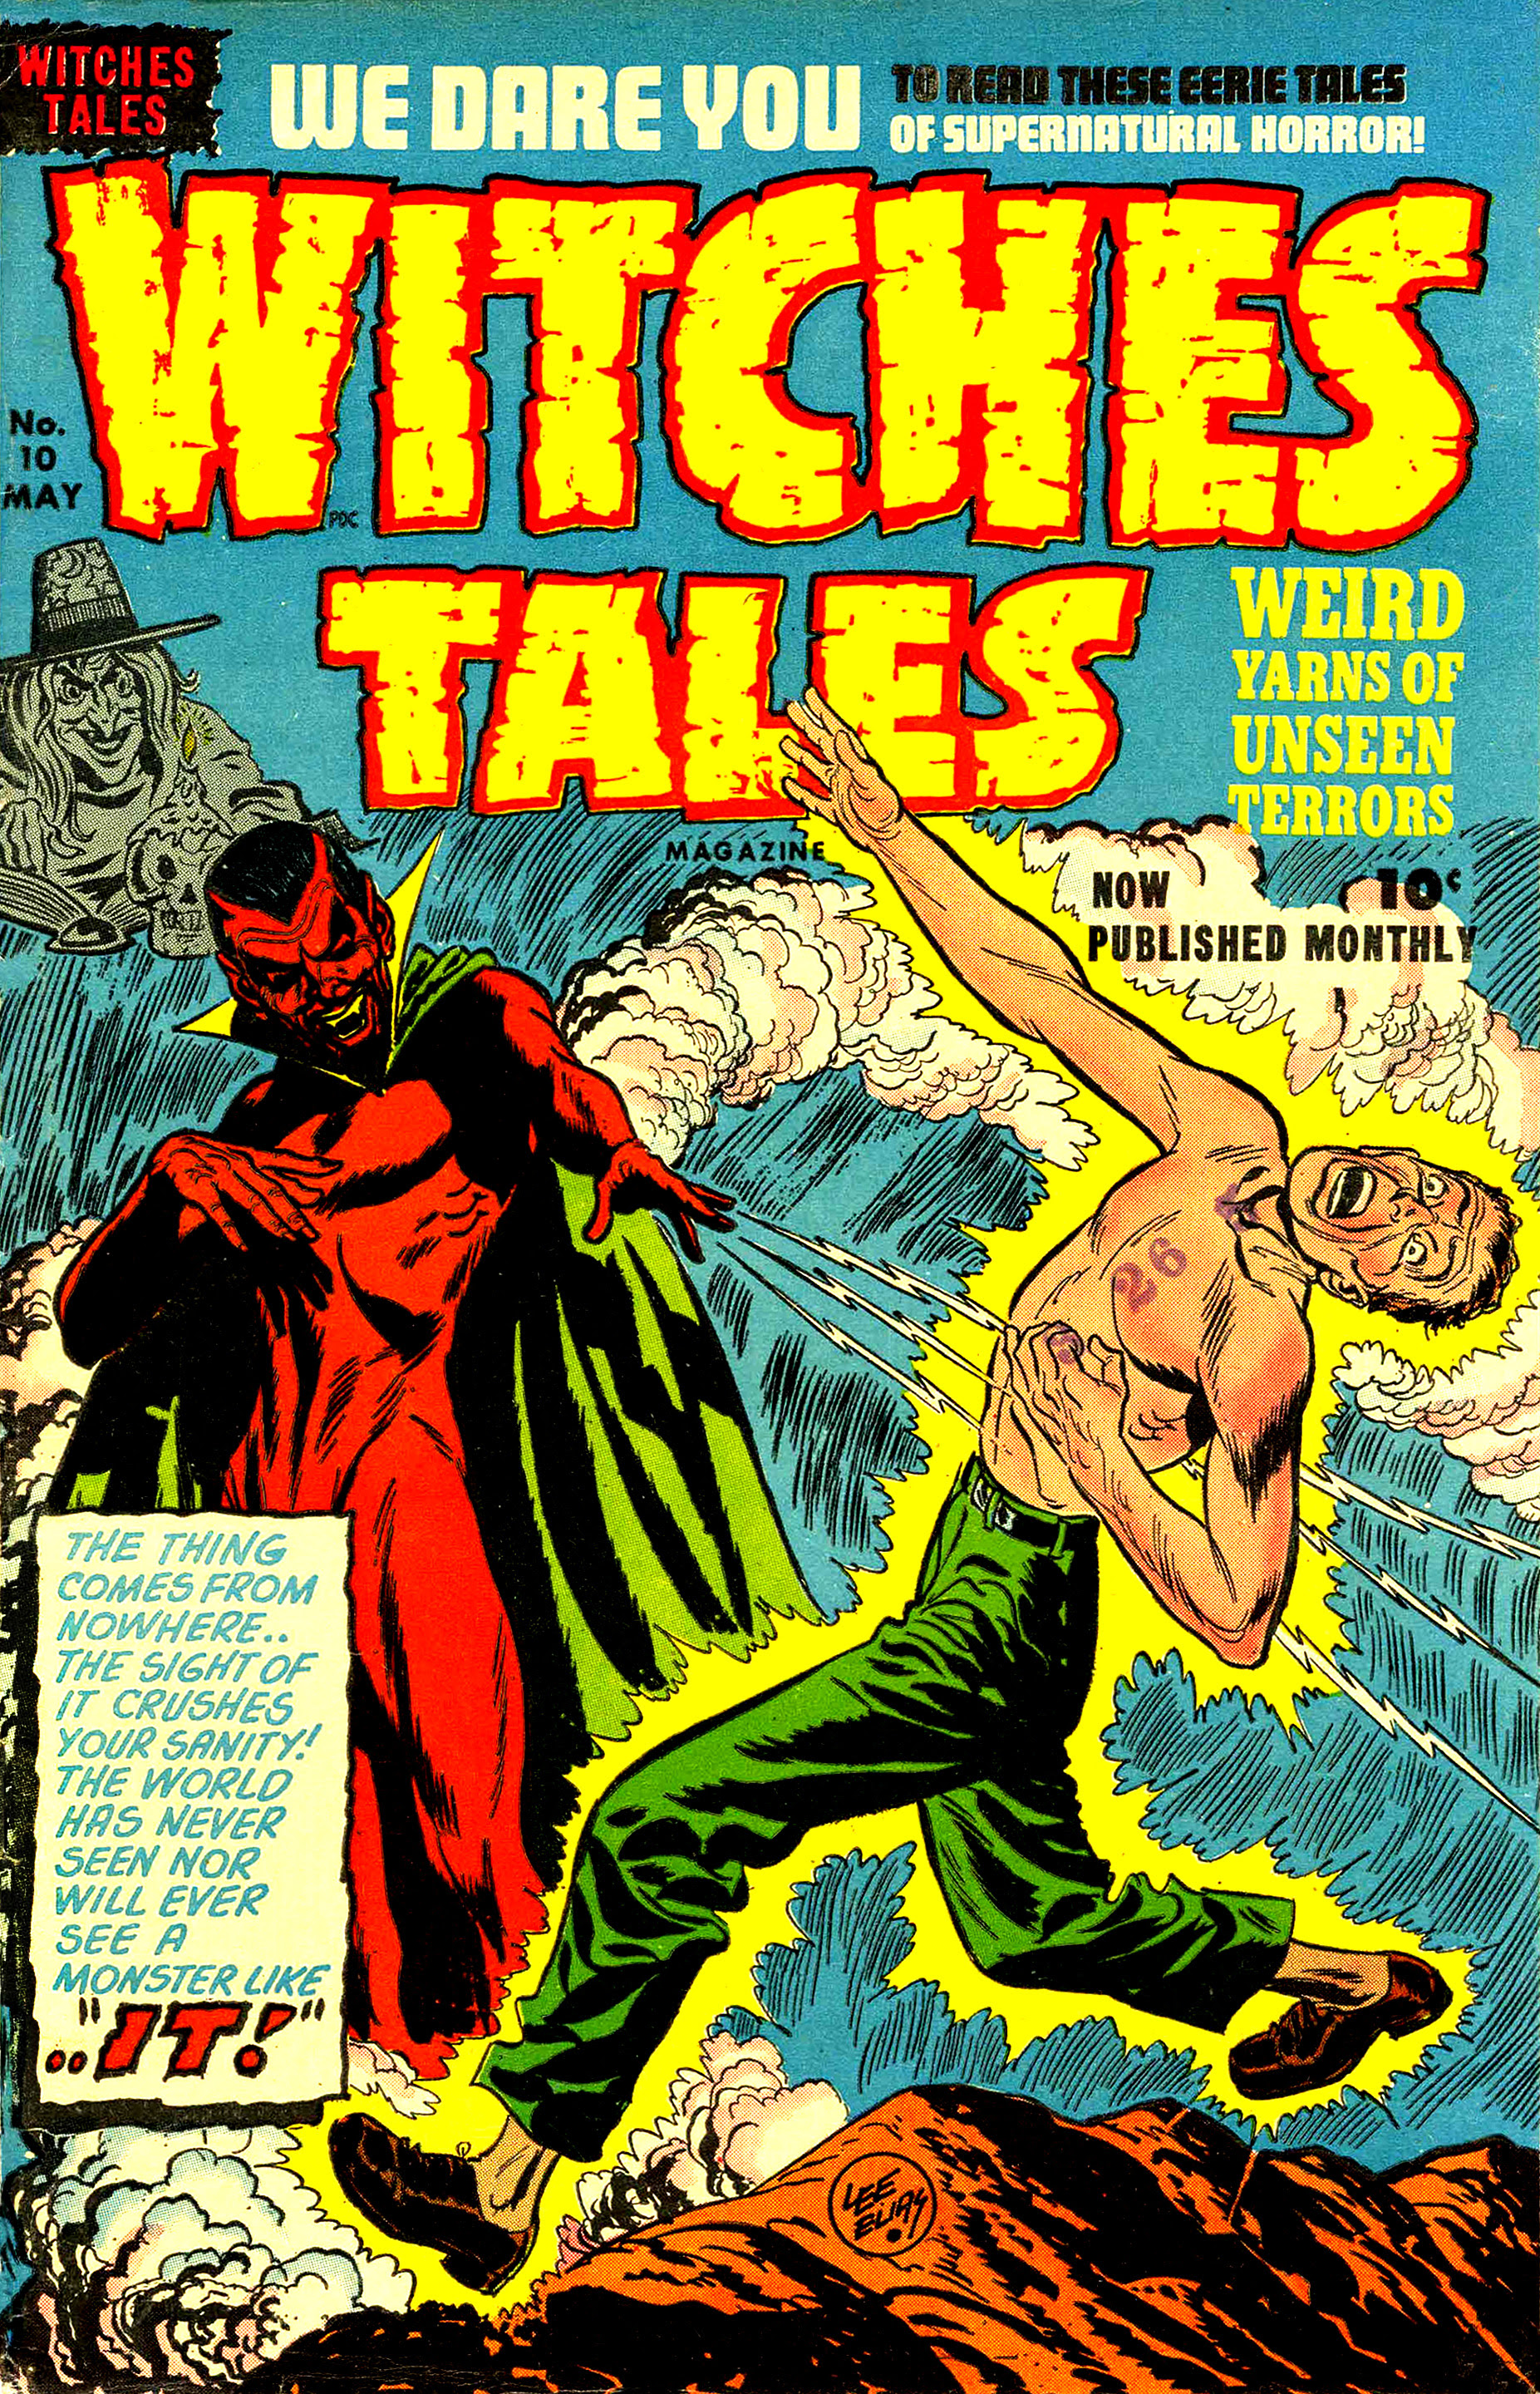 Witches Tales #10, Lee Elias Cover (Harvey, 1952)